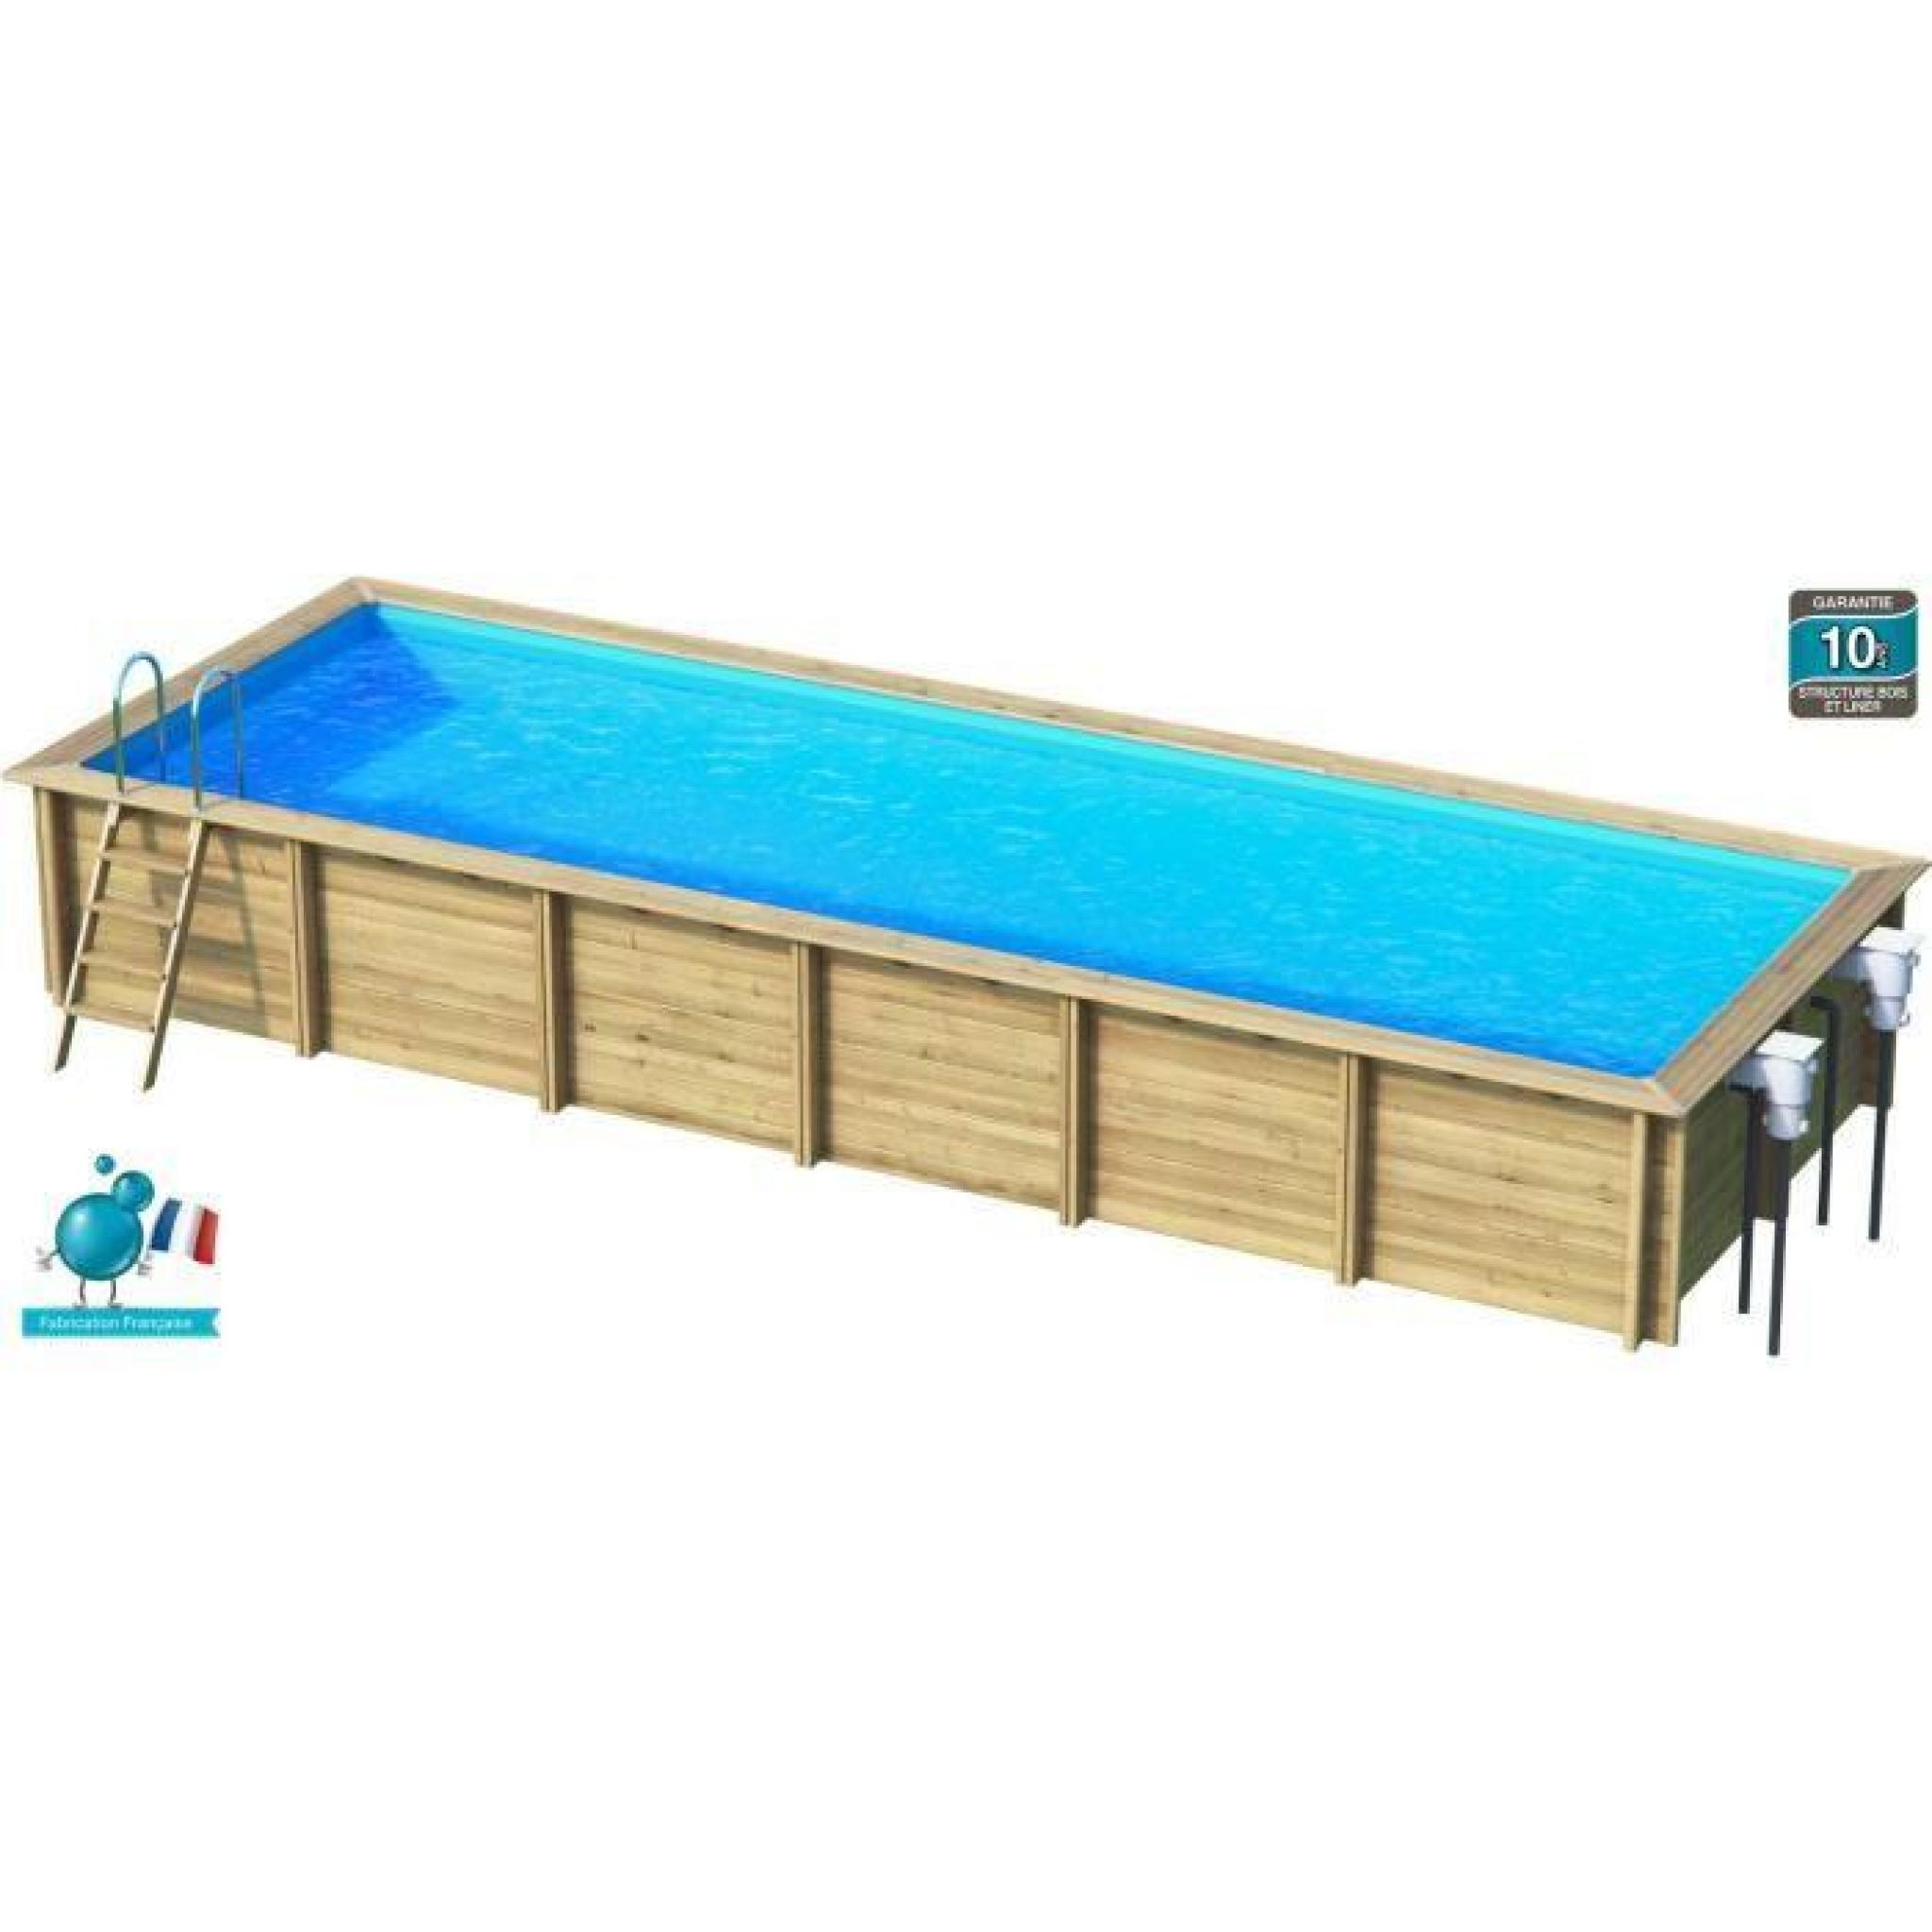 weva piscine bois rectangle 9x3 m hauteur 1 33 m achat. Black Bedroom Furniture Sets. Home Design Ideas